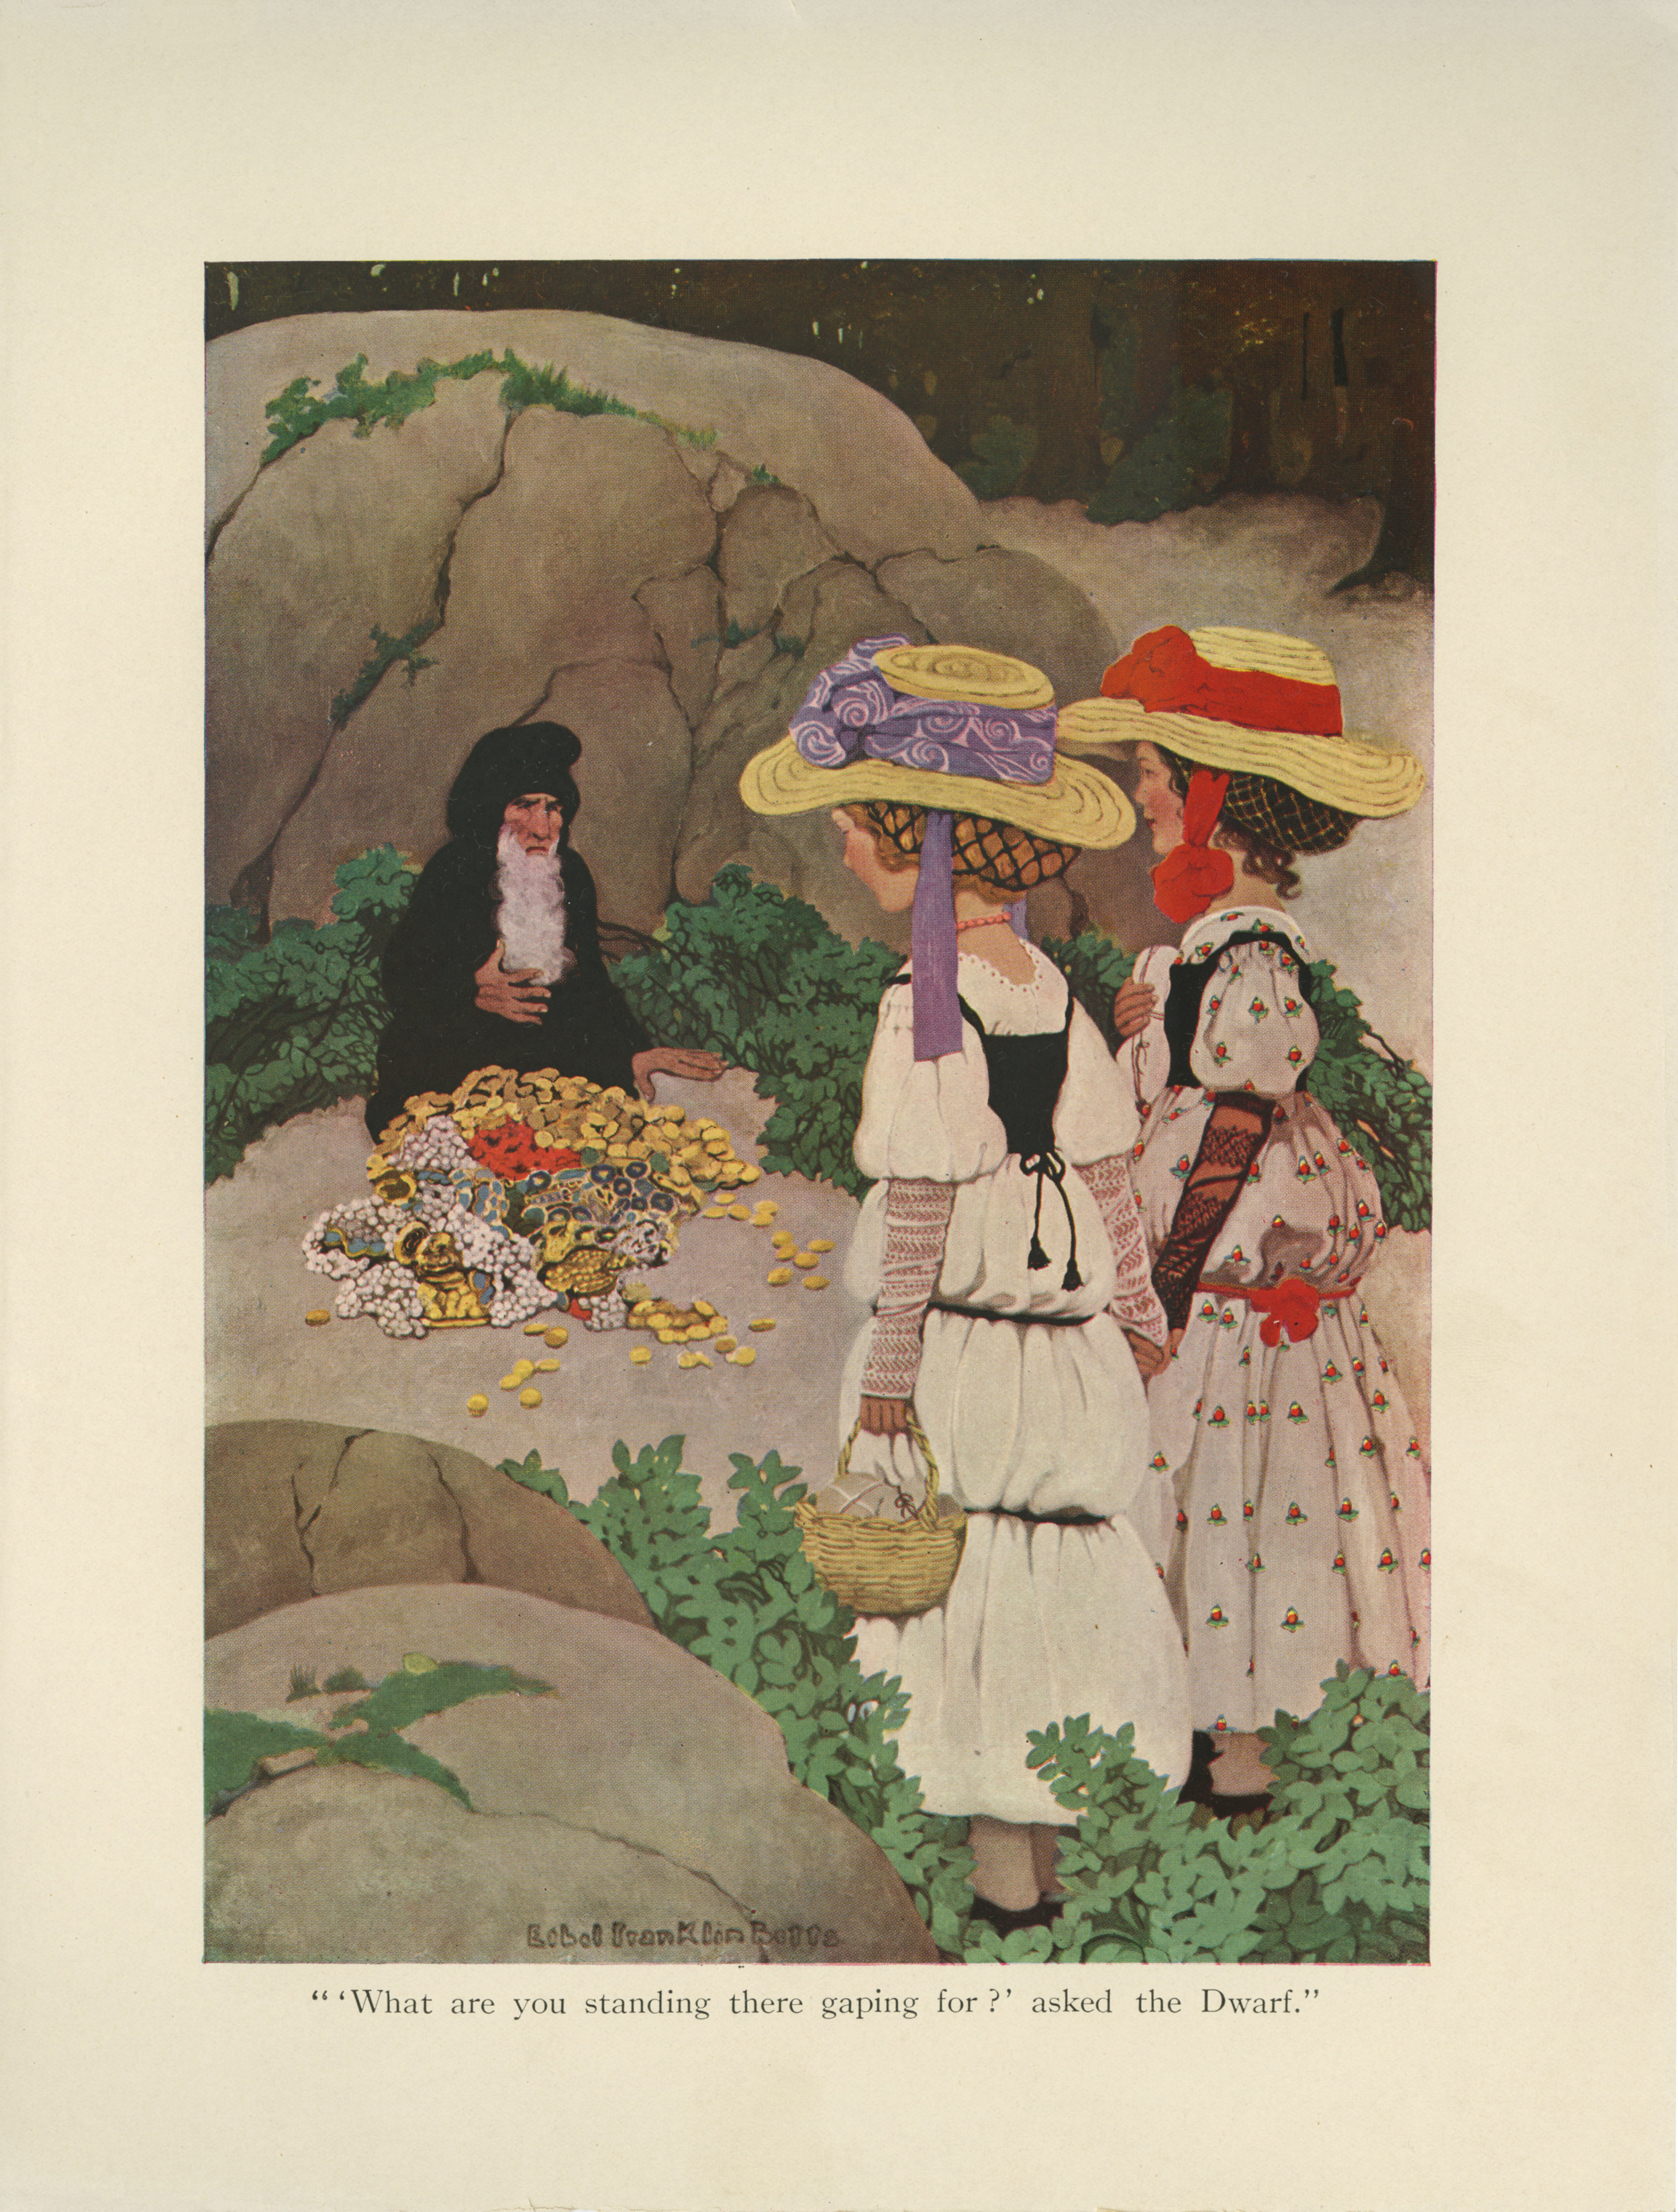 """Ethel Franklin Betts, color illustration of """"Snow-White and Rose-Red""""from  Fairy Tales from Grimm . Edited with an intro written by Hamilton W. Mabie. Published in 1909 by Edw. Stern & Co. Inc."""